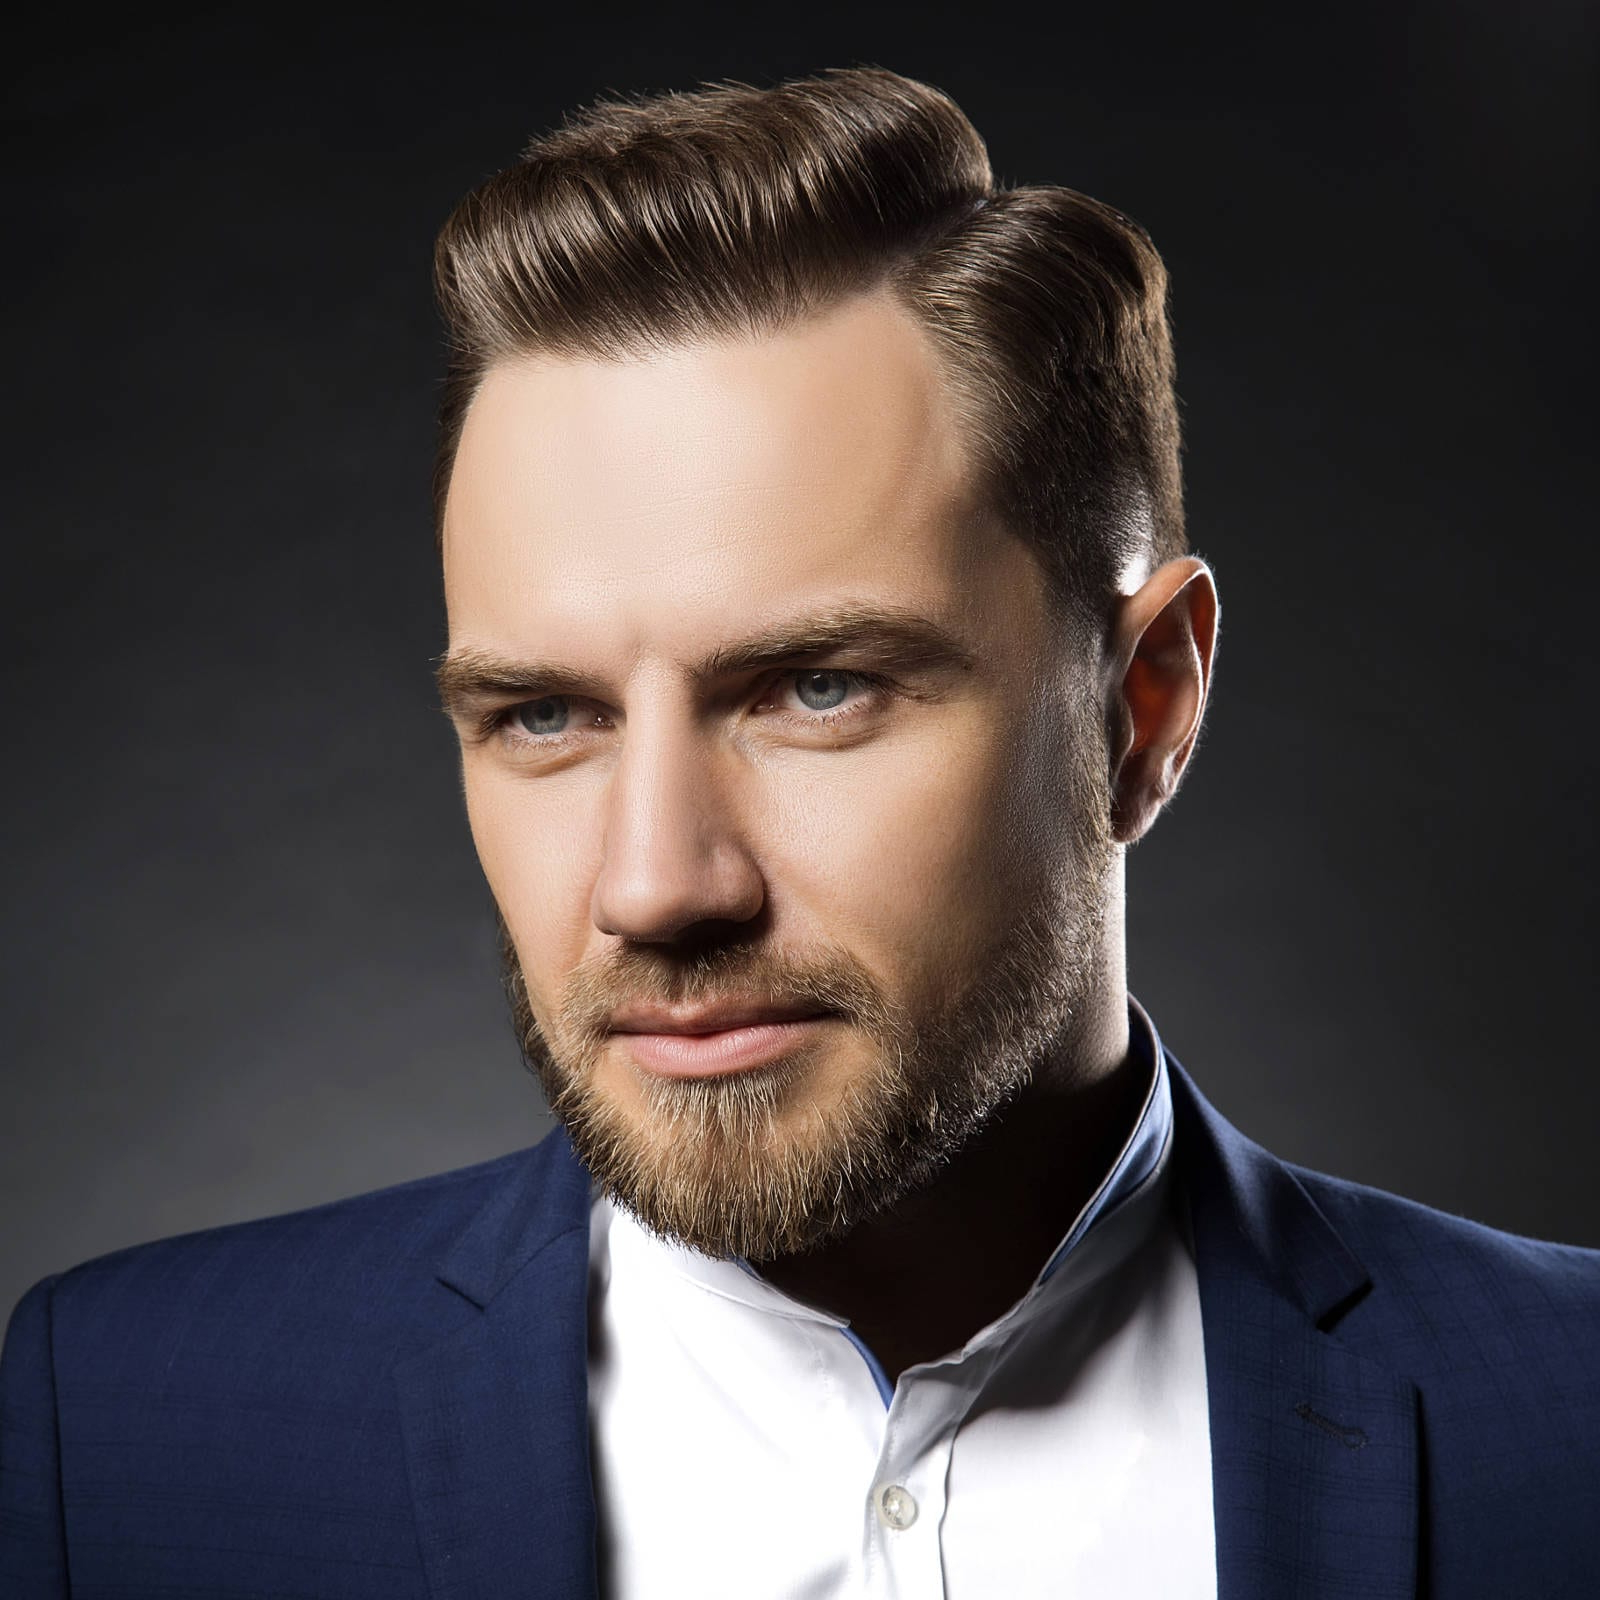 30 Side Part Haircuts: A Classic Style For Gentlemen Throughout Current Wavy Side Part Hairstyles (View 6 of 20)